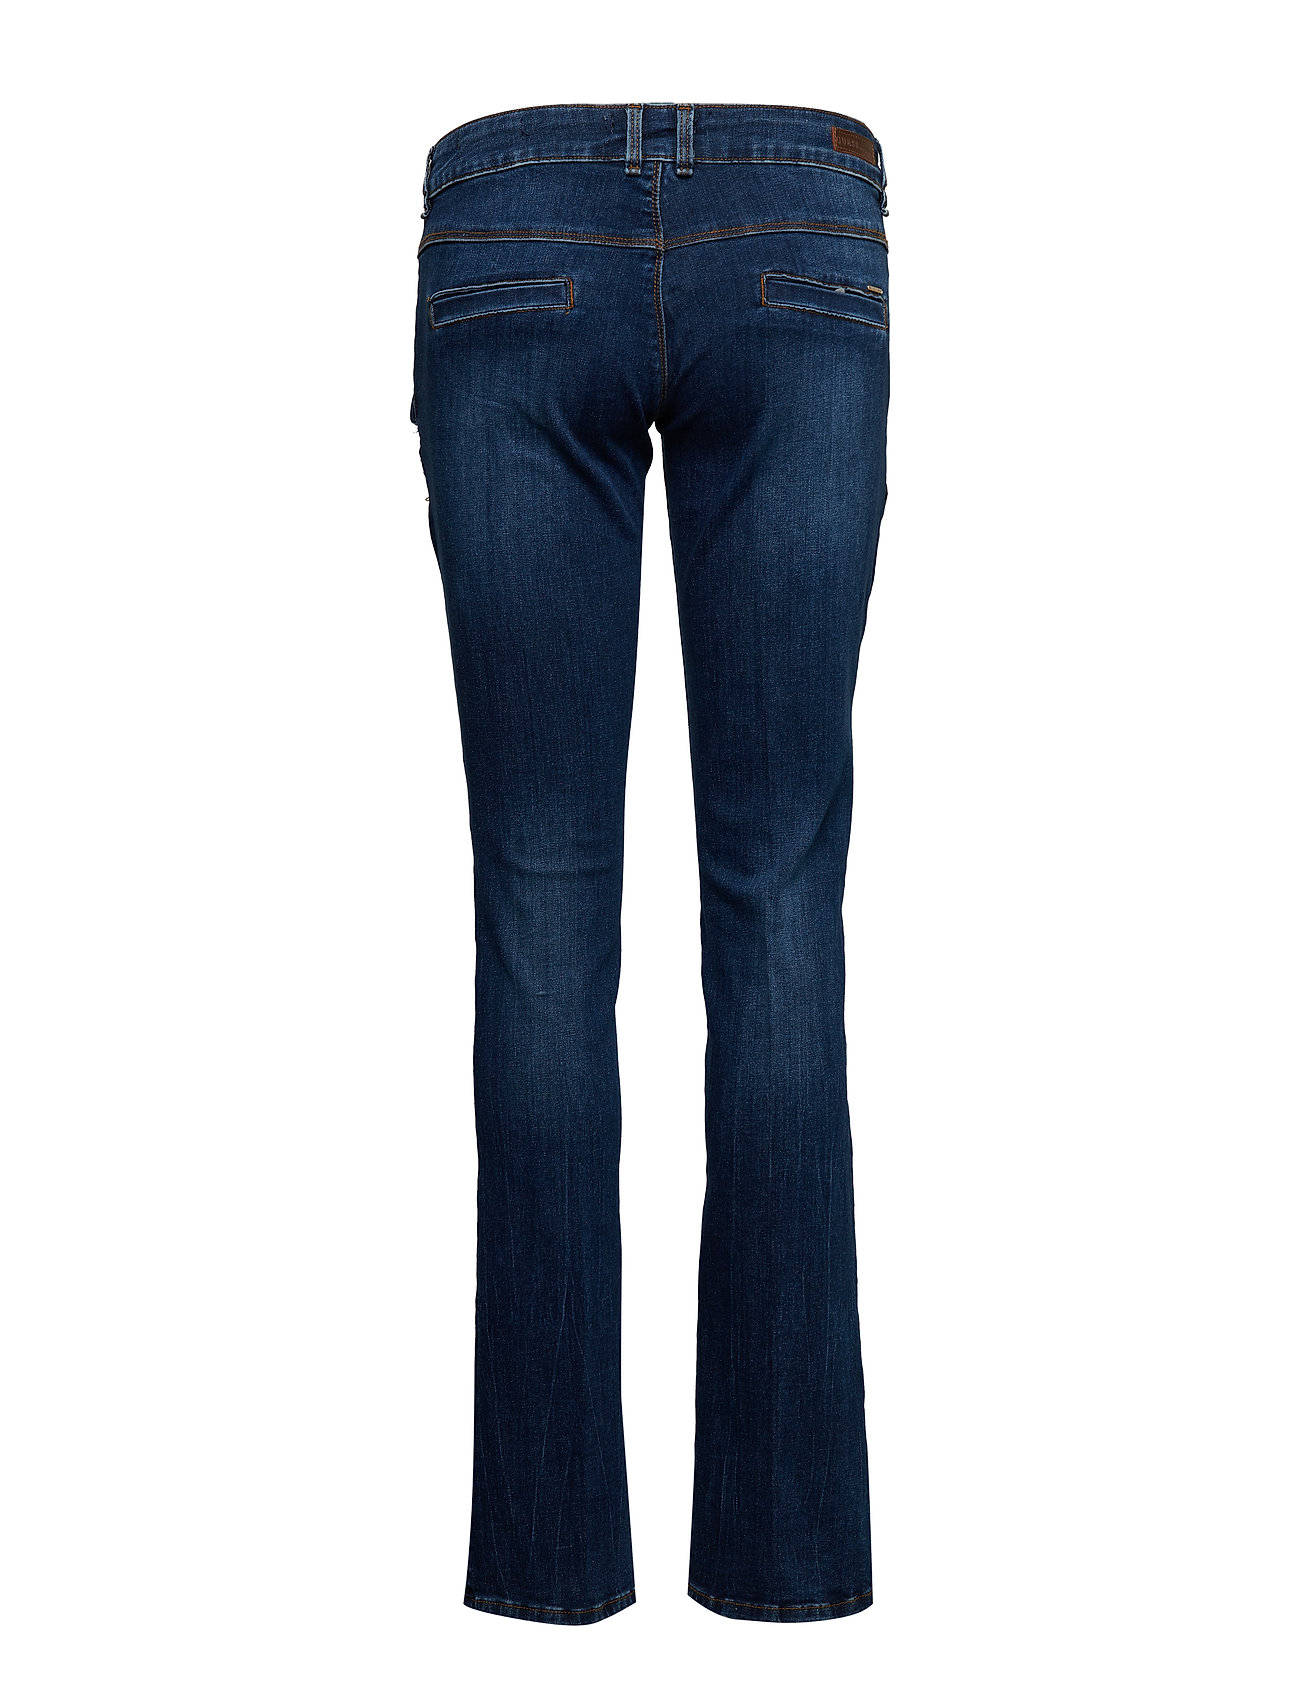 Jeans BootcrowdGuess Mini Jade BootcrowdGuess Jade Mini Jade BootcrowdGuess Mini Jeans 34A5LjR